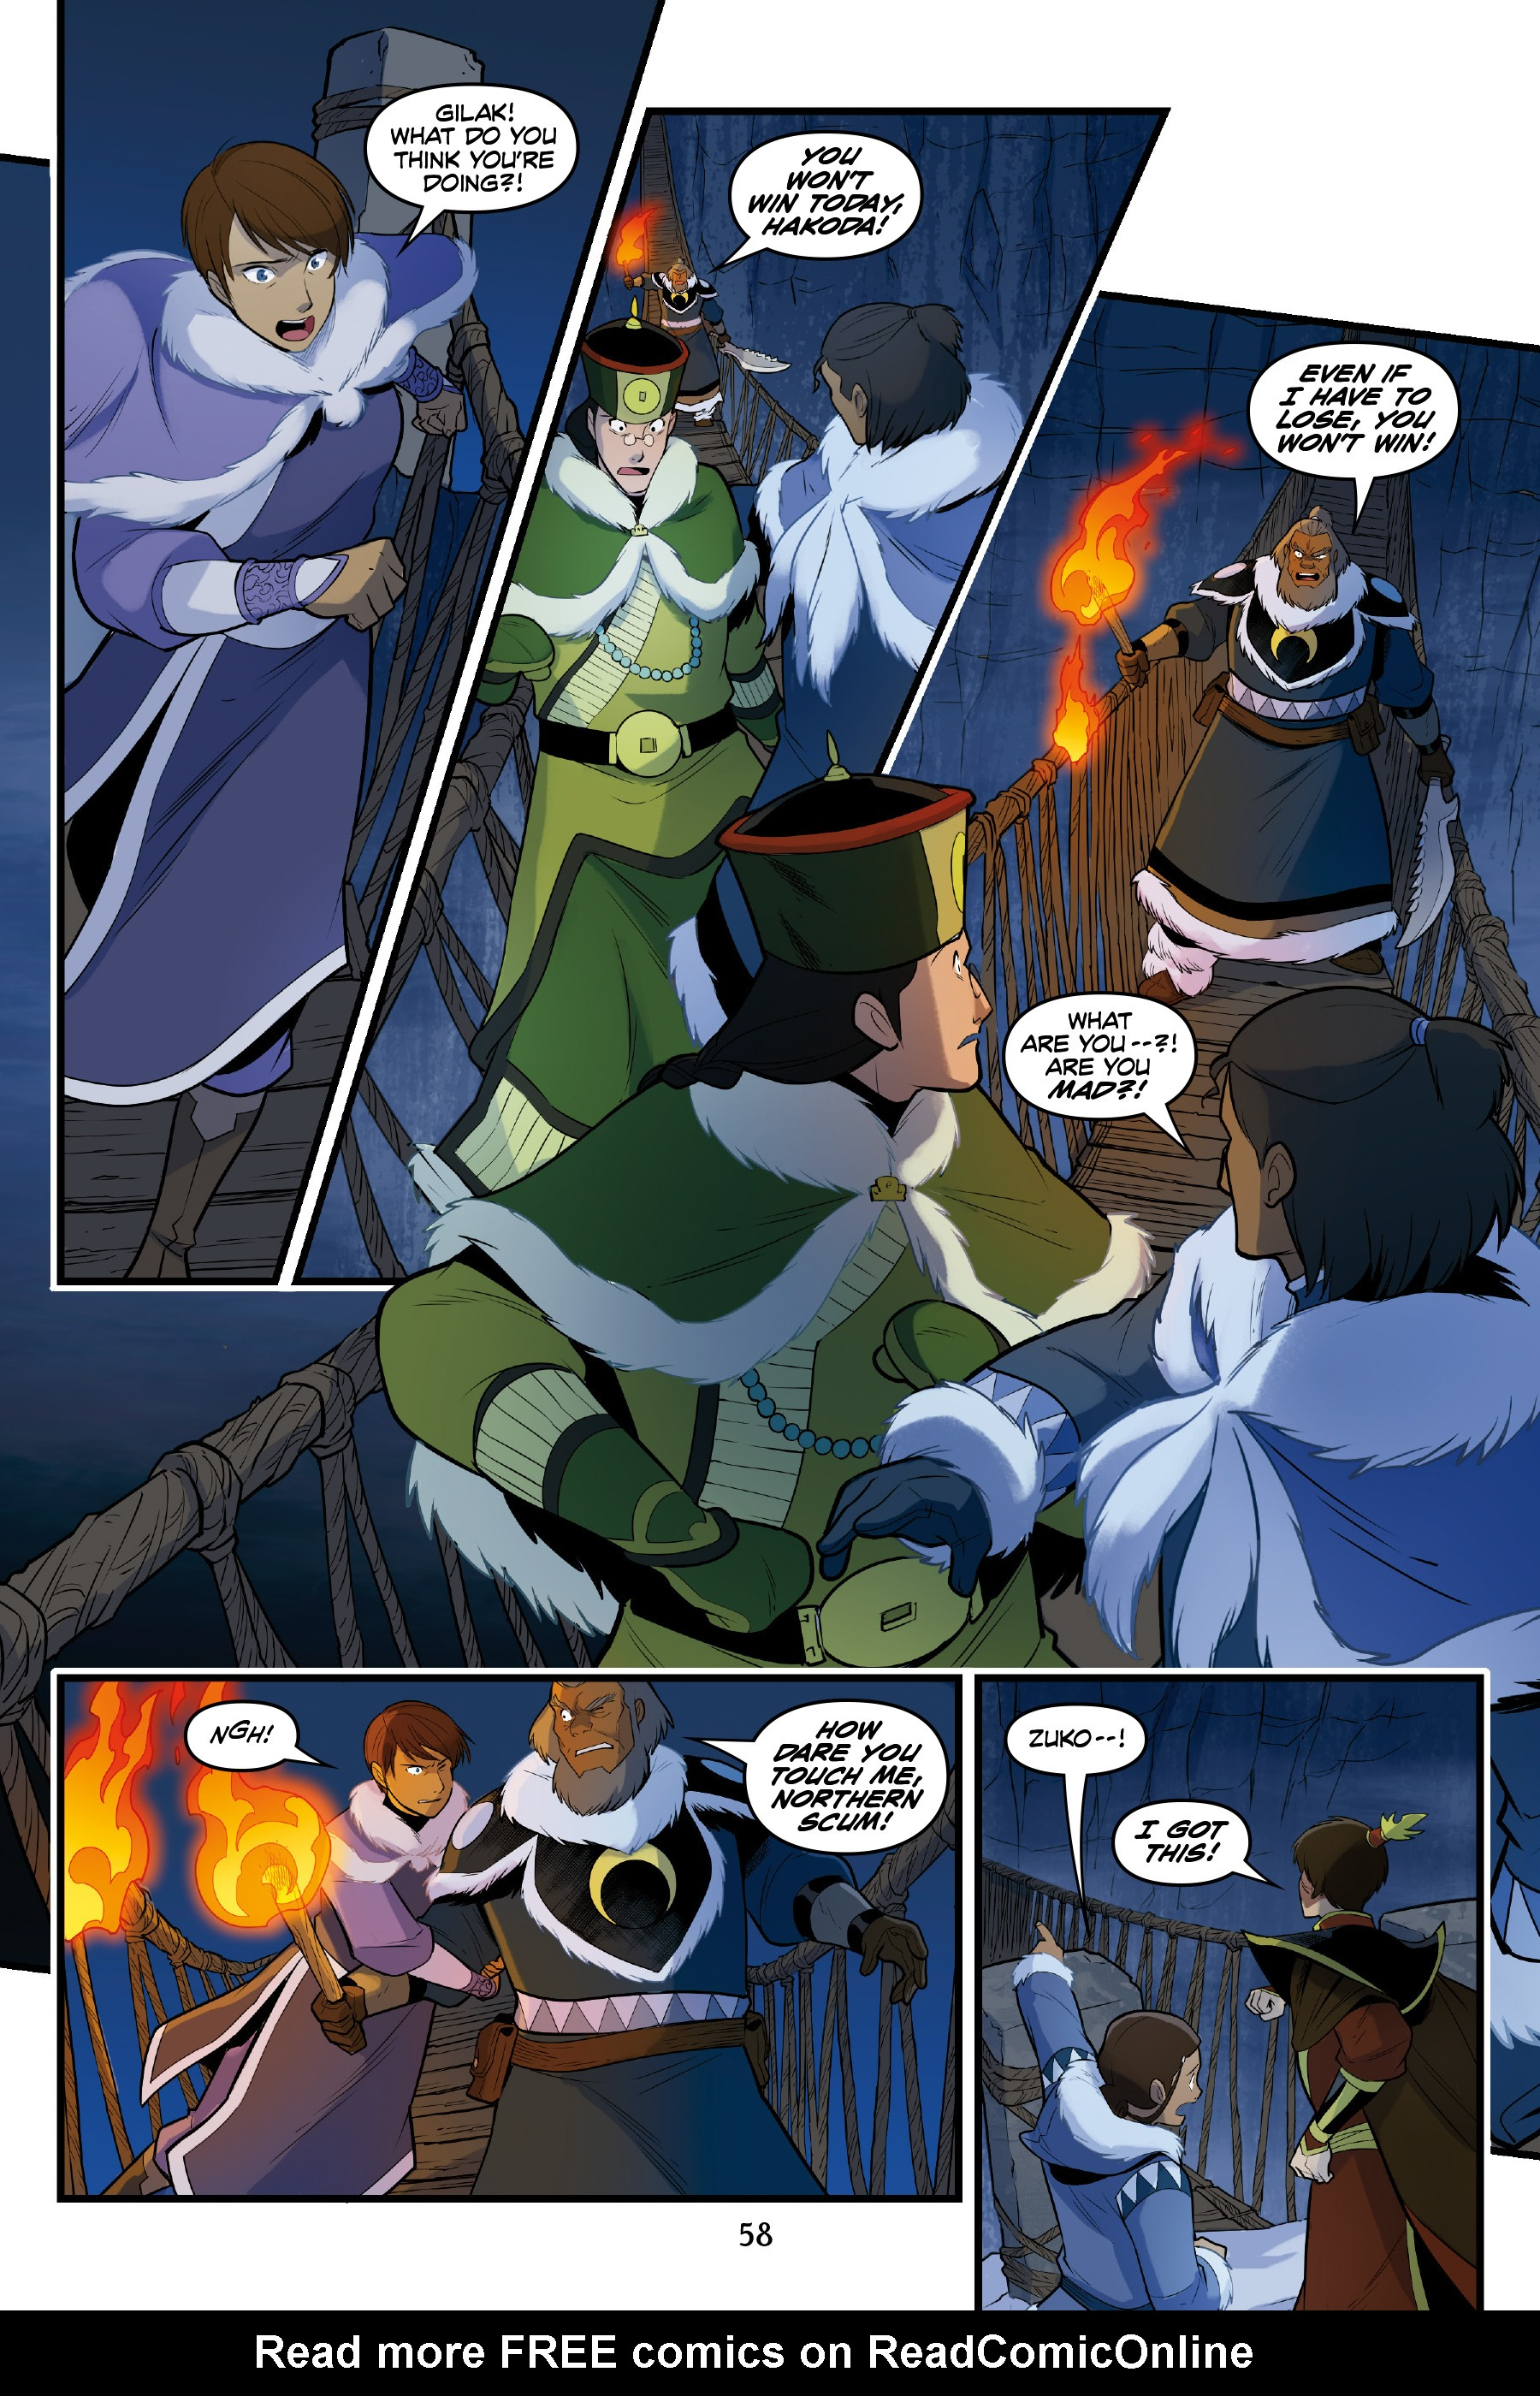 Read online Nickelodeon Avatar: The Last Airbender - North and South comic -  Issue #3 - 58